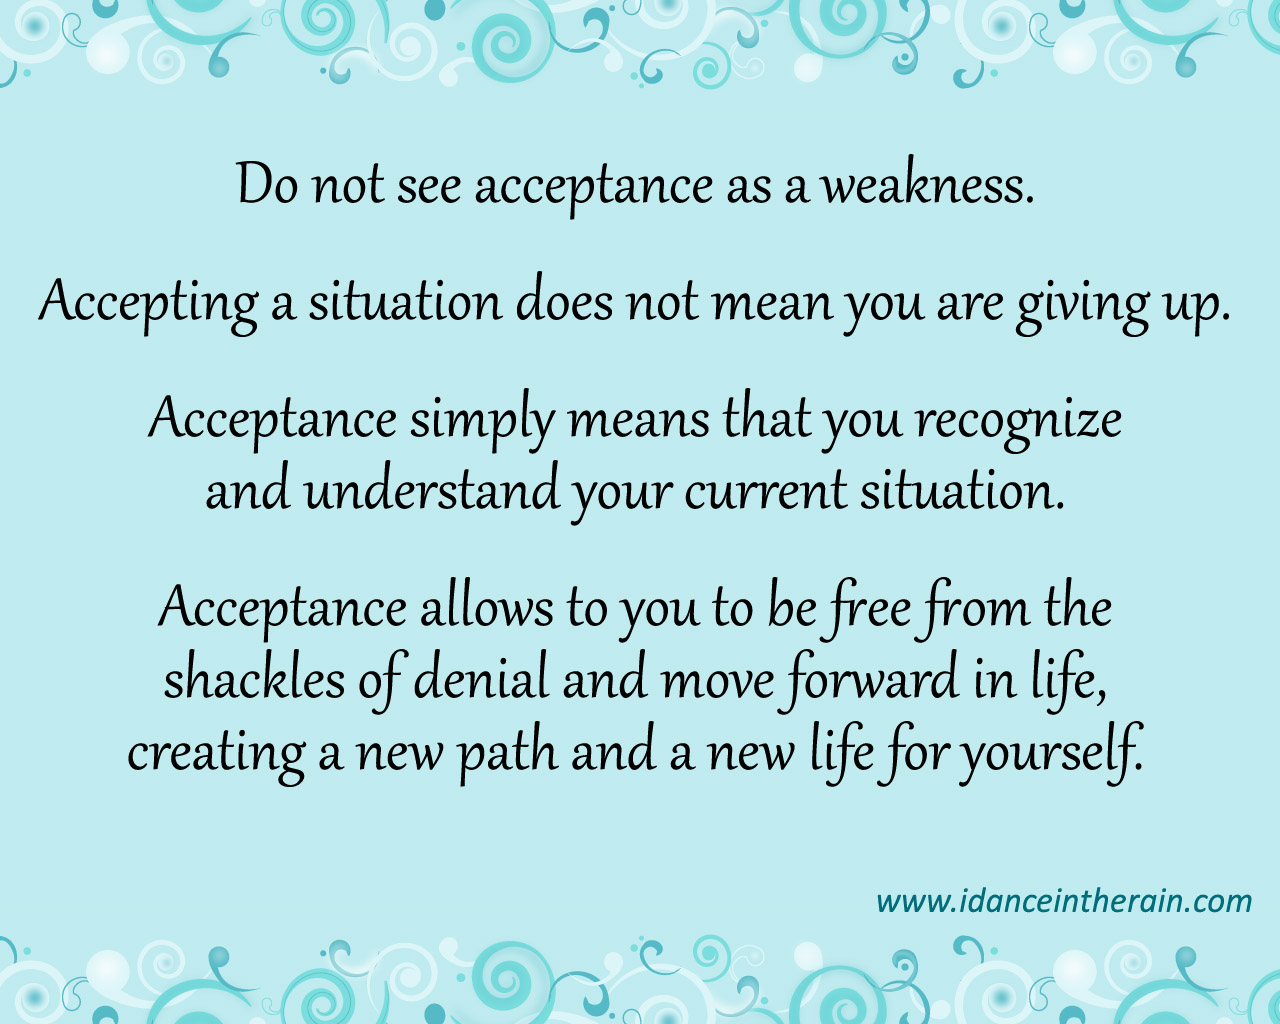 Do Not See Acceptance As A Weakness. Accepting A Situation Does Not Mean You Are Giving Up. Acceptance Simply Means That You Recognize And Understand Your Current Situation...